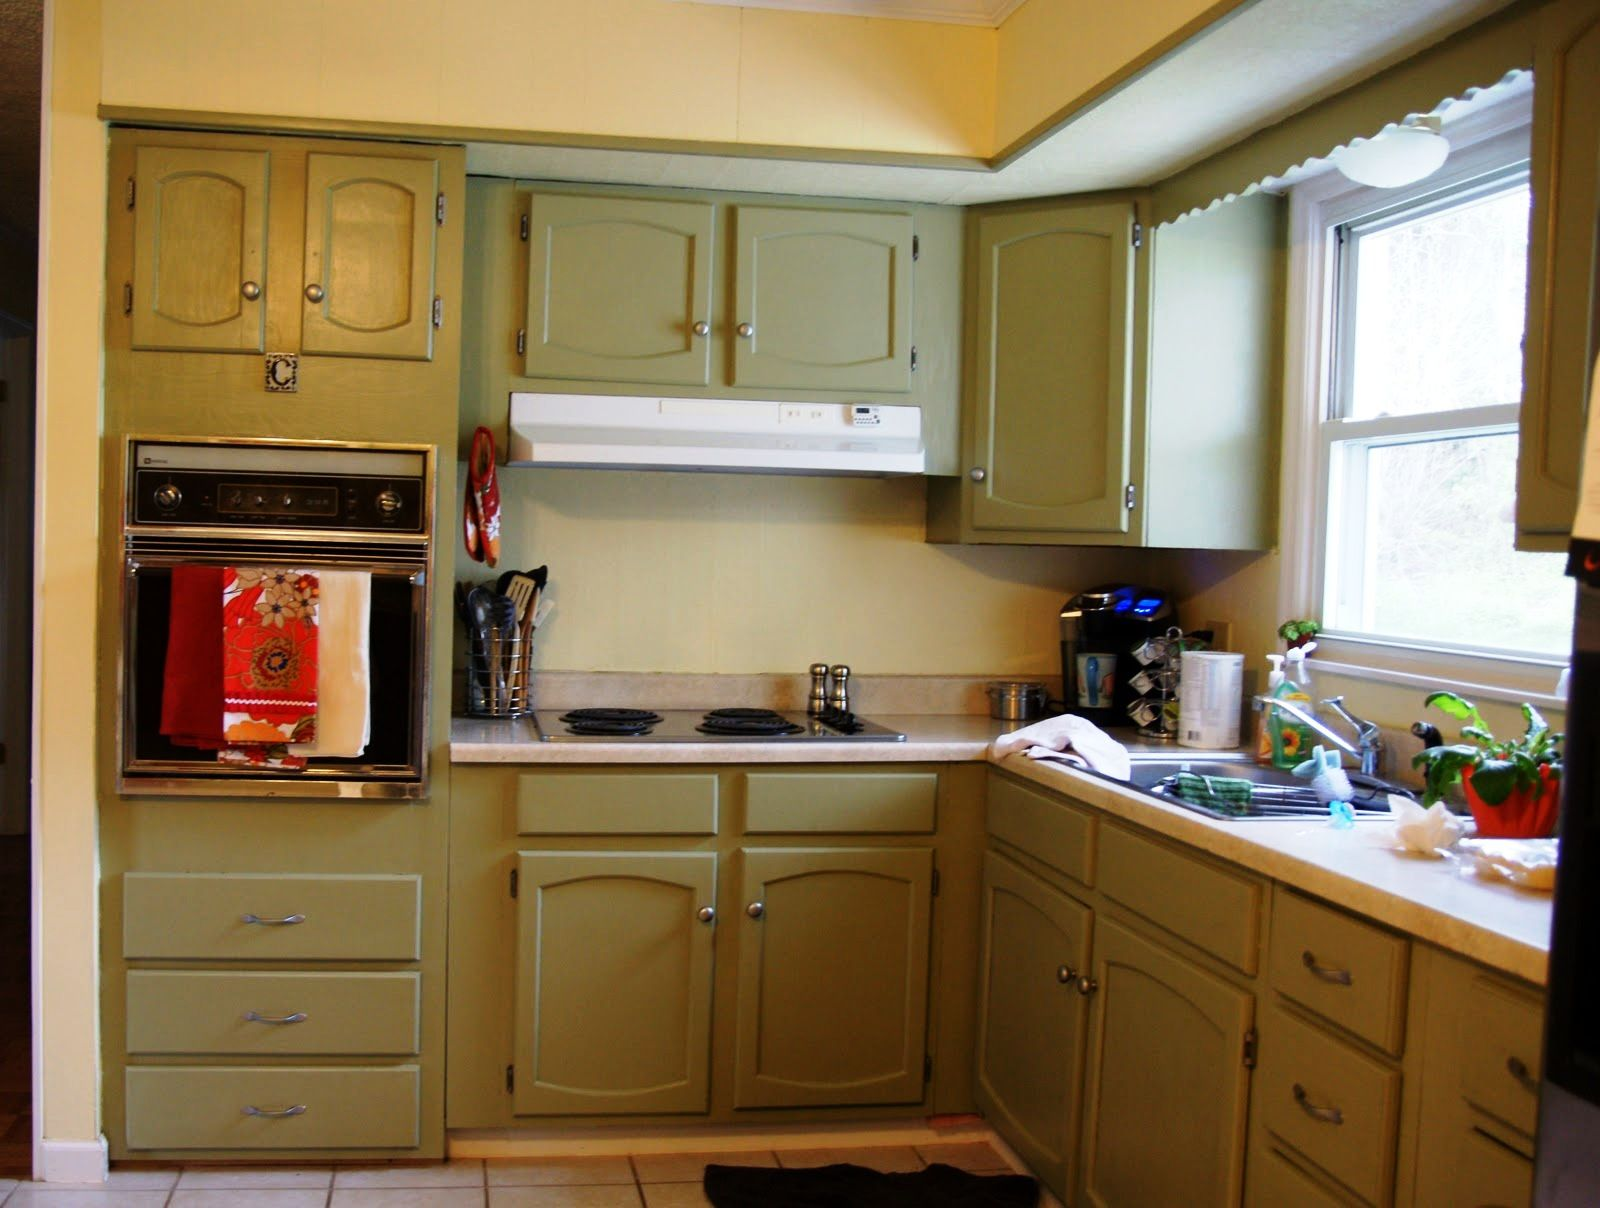 How To Remove Kitchen Countertops For Removing A Ceramic Tile Kitchen Countertop How To